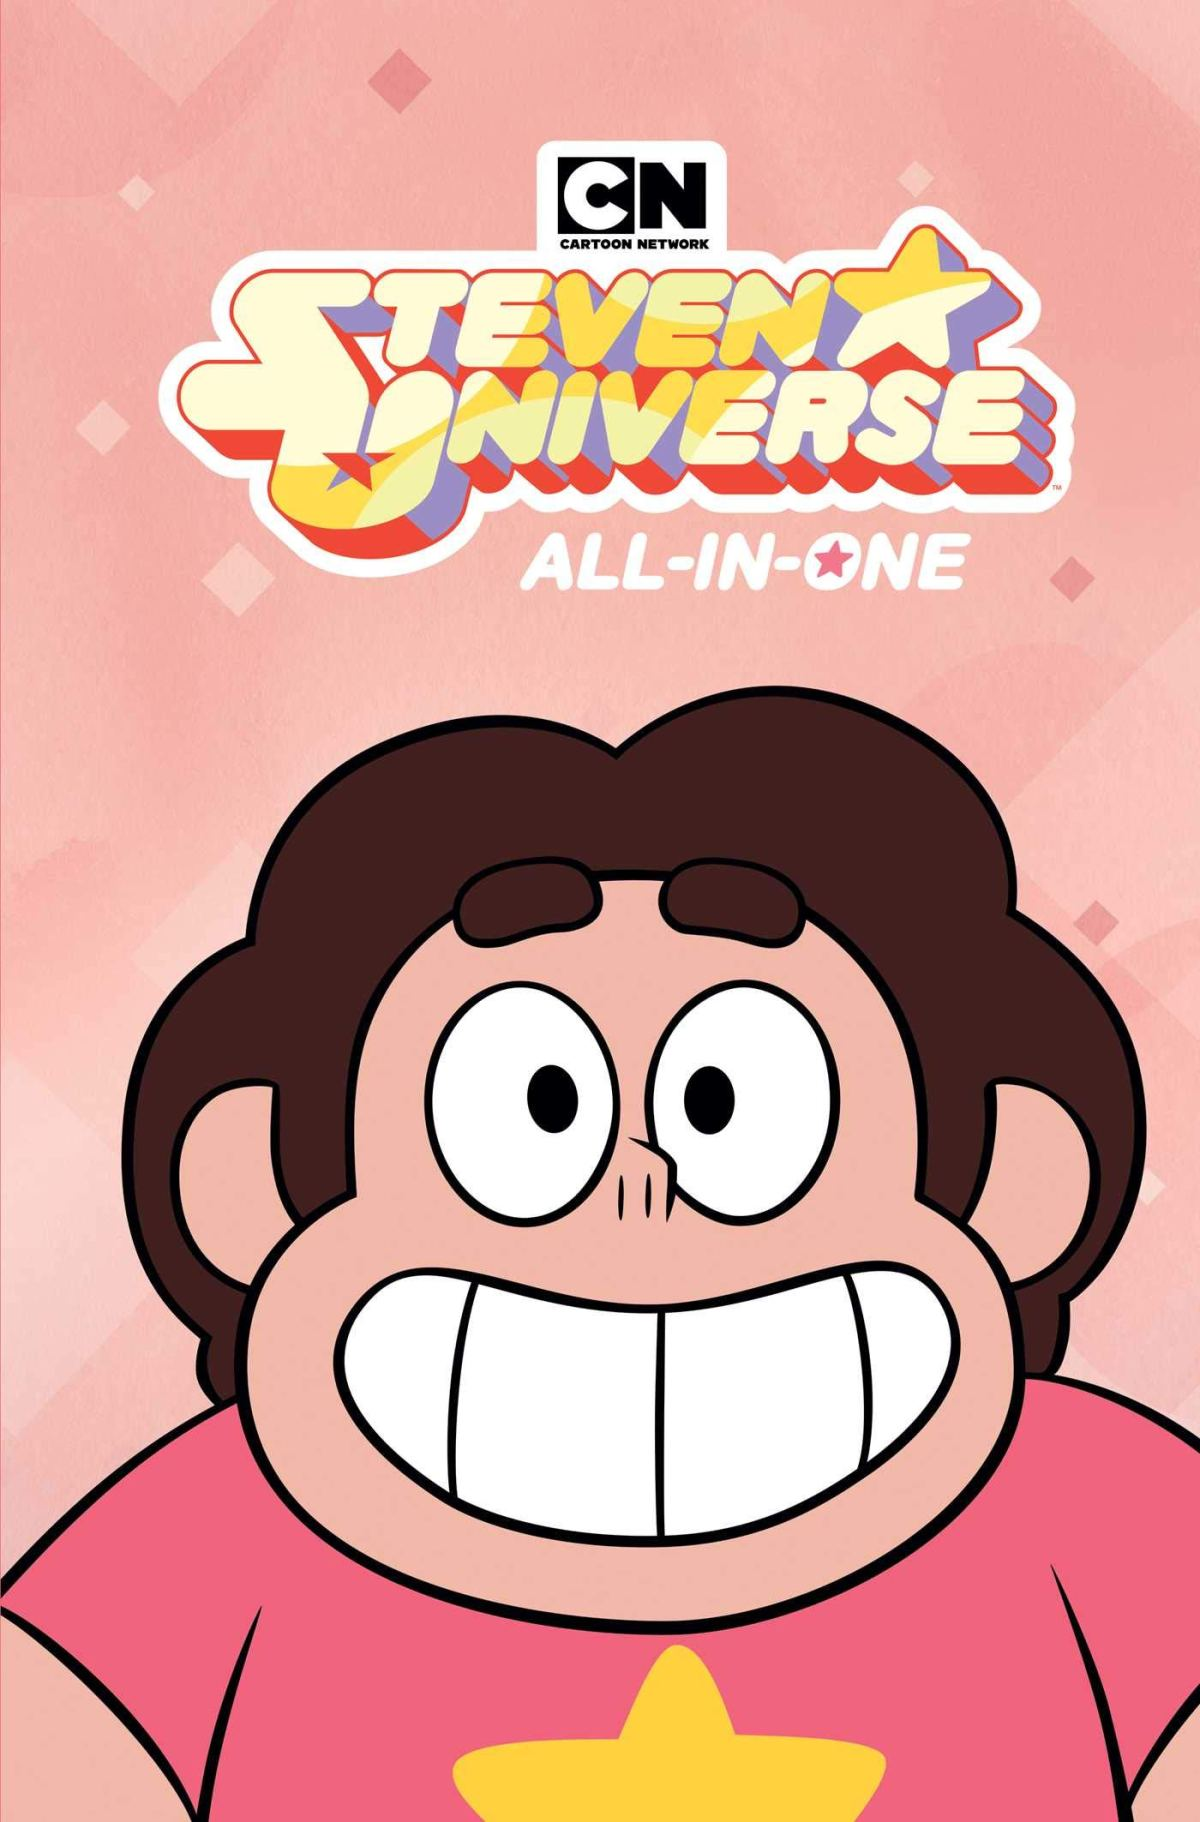 Steven Universe smiling on the cover of Steven Universe All-In-One Edition comic collection.